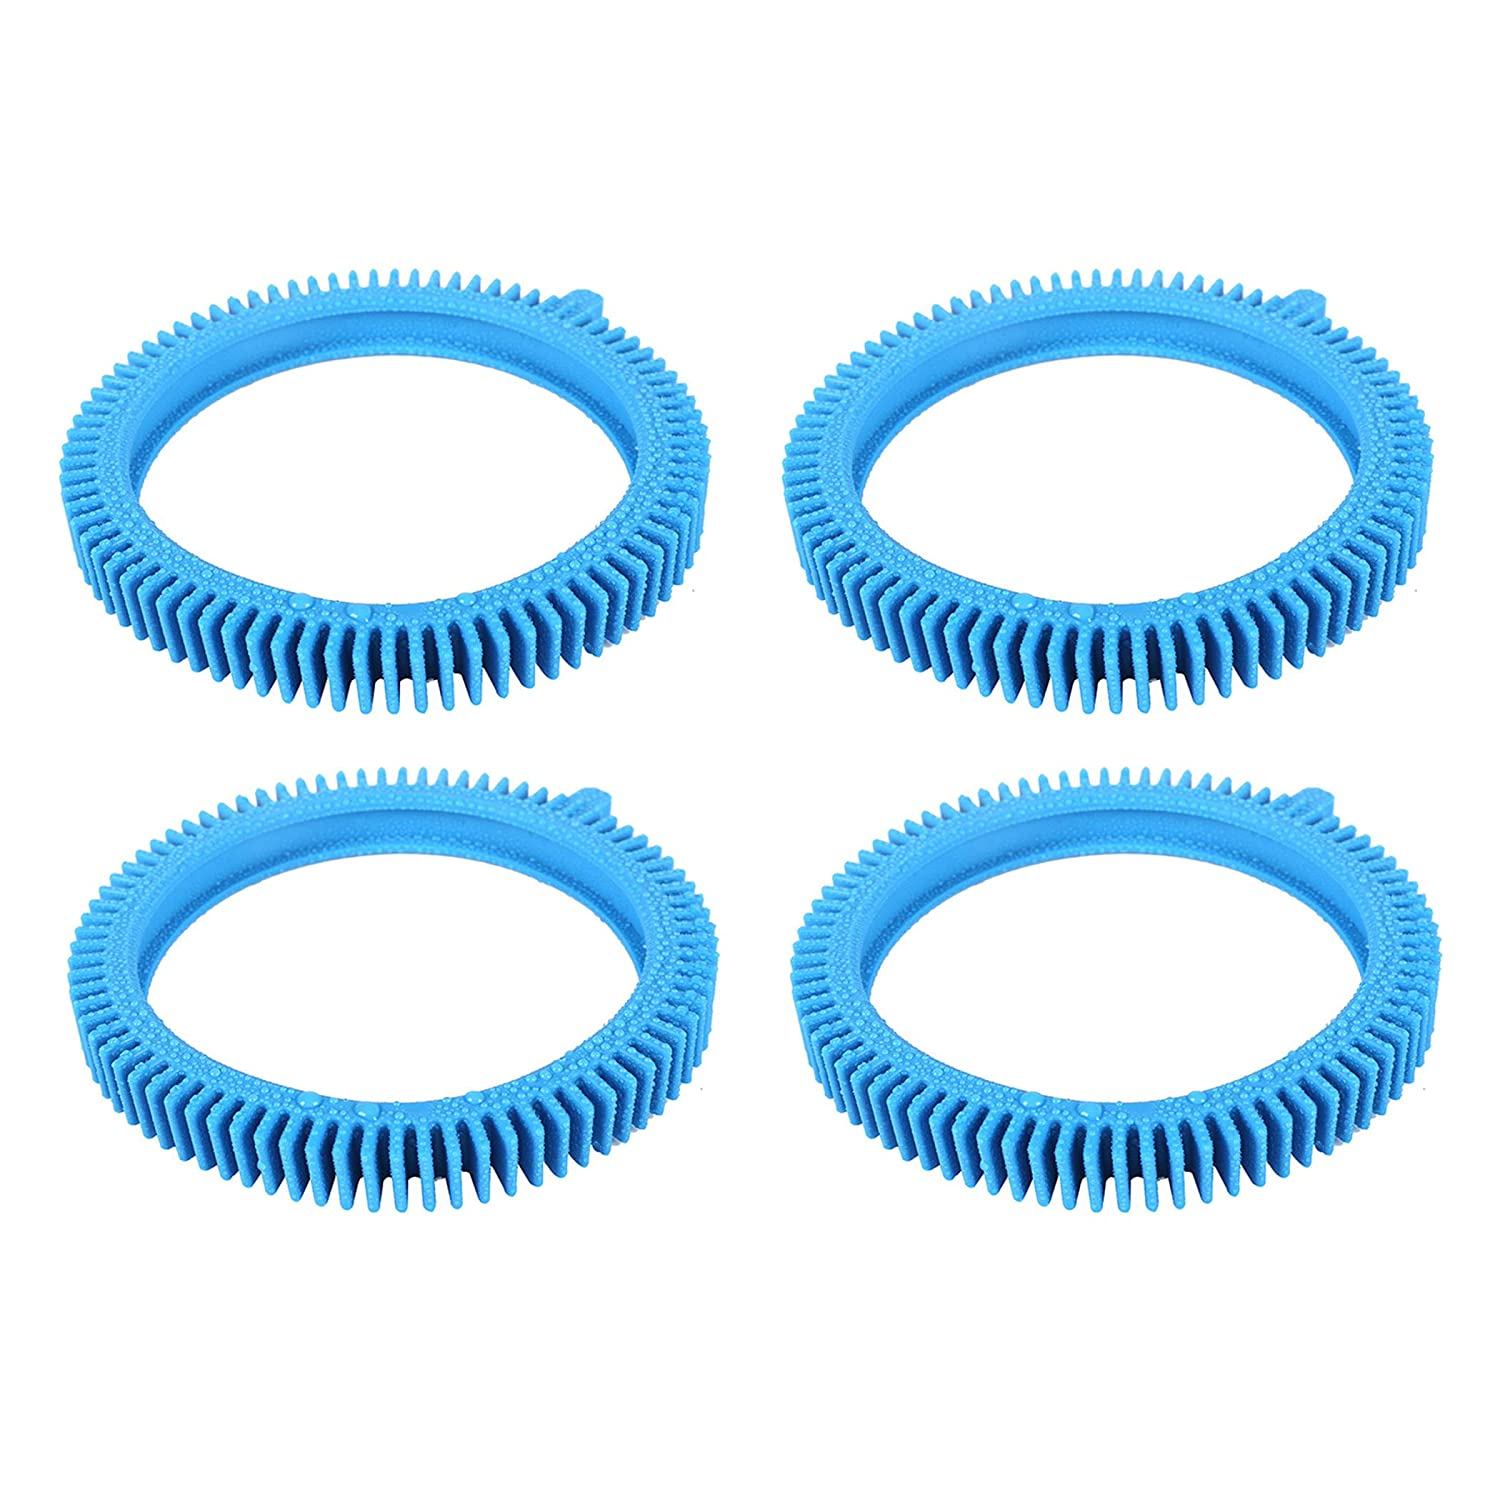 AR-PRO Replacement Tires with Super Hump for Poolvergnuegen 896584000-143, Fits Select Poolvergnuegen Cleaners, 4-Pack